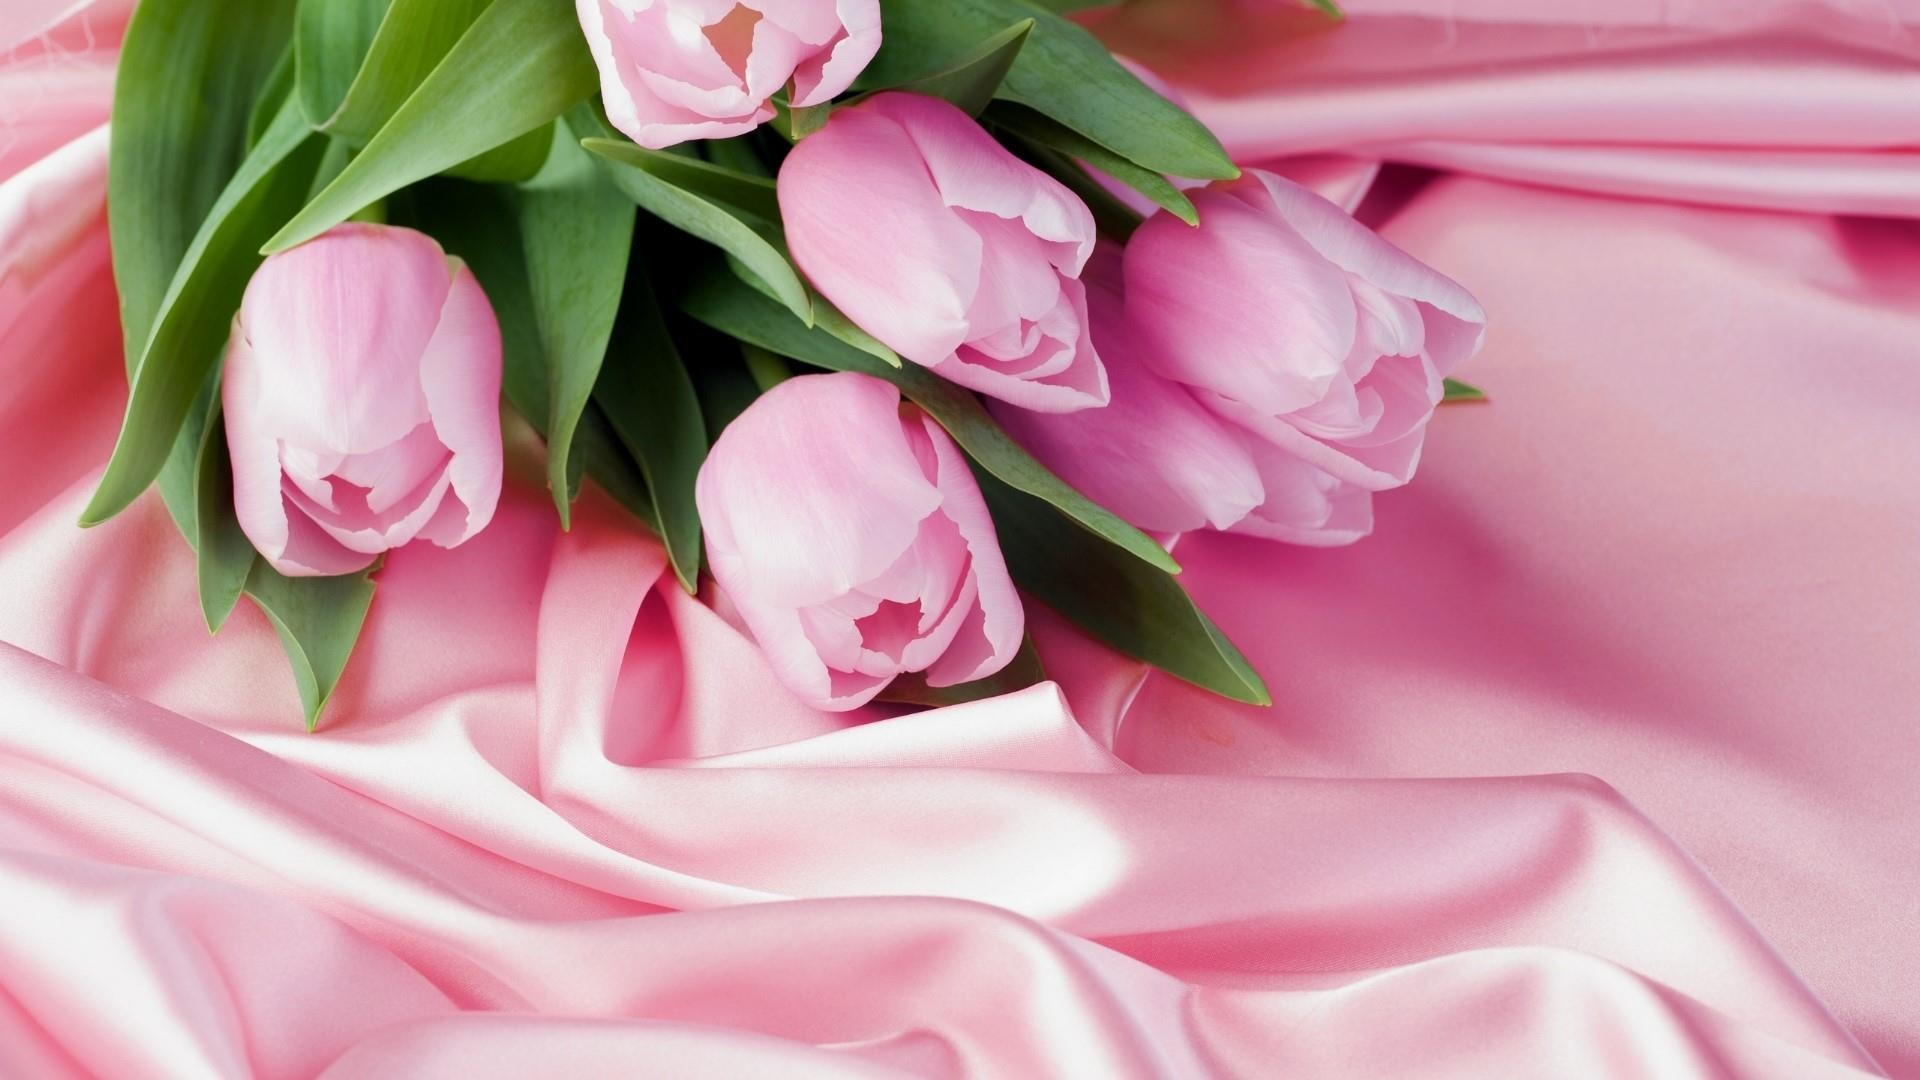 Res: 1920x1080, Pink Tulip Bouquet Wallpaper | Wallpaper Studio 10 | Tens of thousands HD  and UltraHD wallpapers for Android, Windows and Xbox